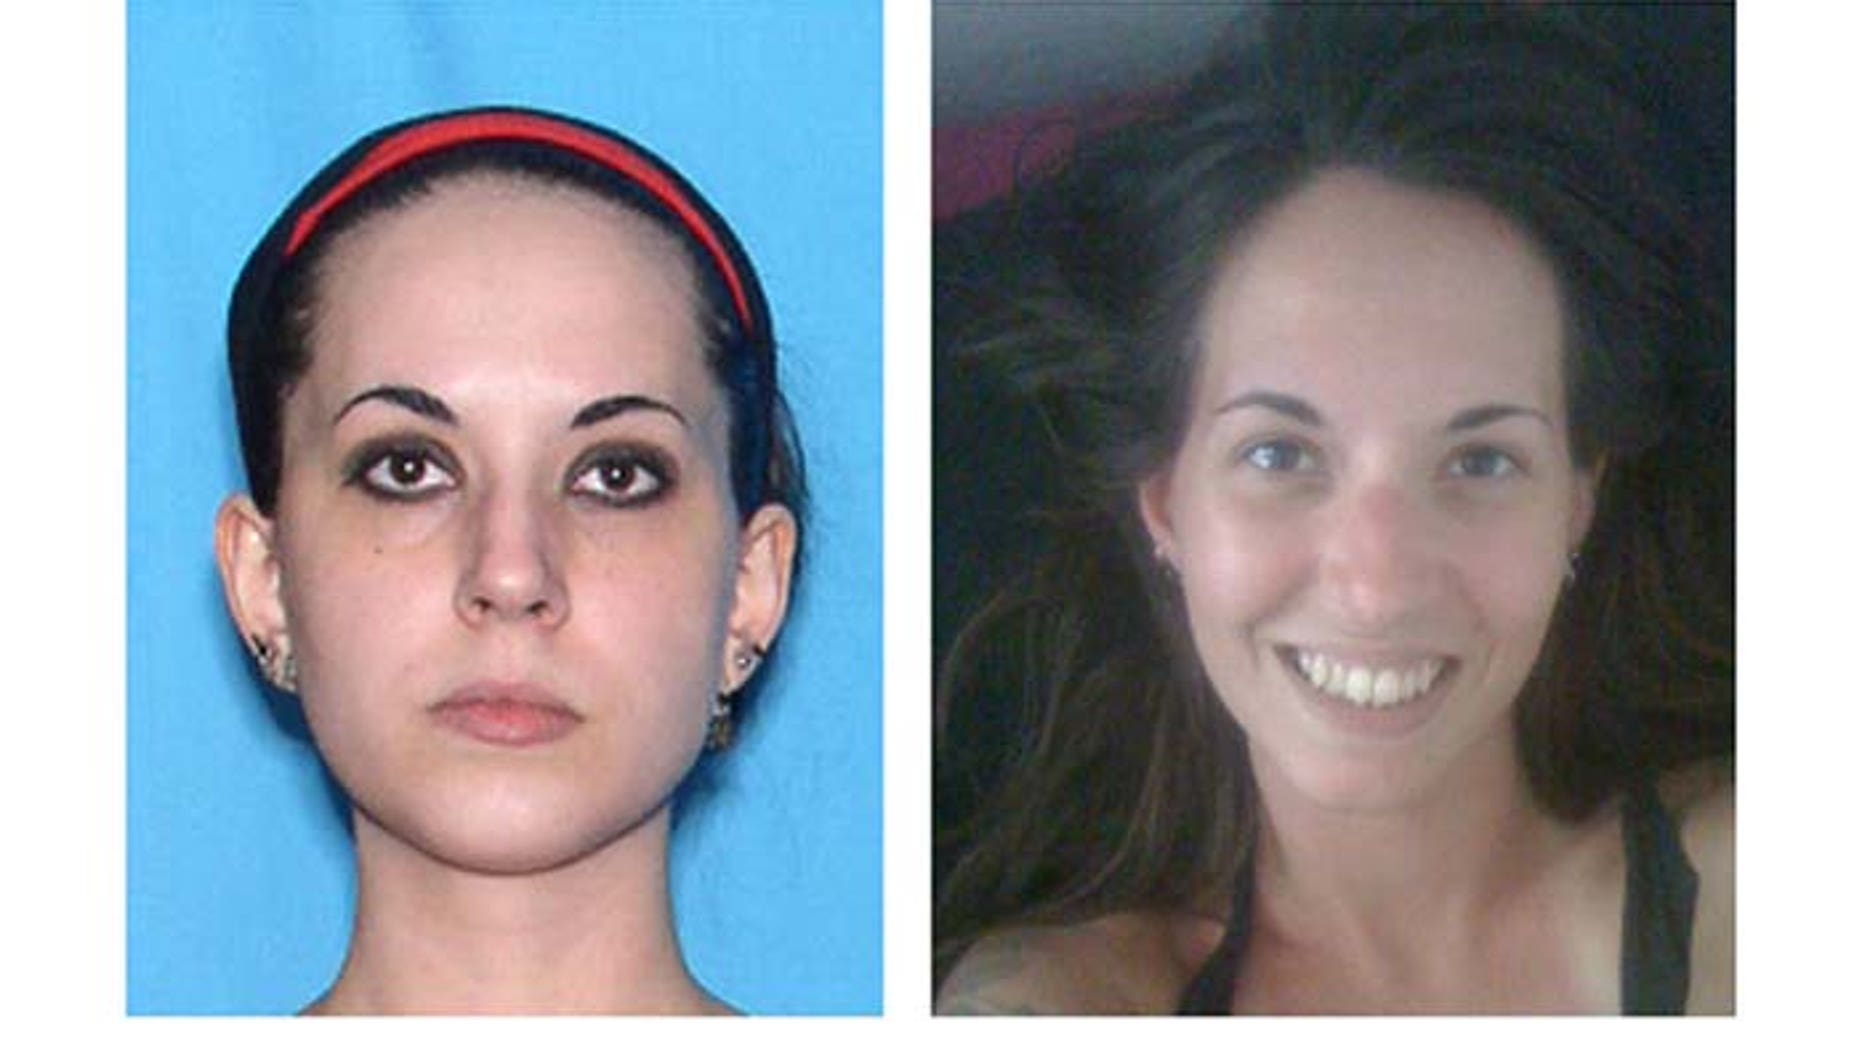 These undated photos, provided by the Ormond Beach Police Department, show 28-year-old Heather Bird, of Holly Hills, Fla. Bird was last seen leaving a local strip club on Aug. 28.